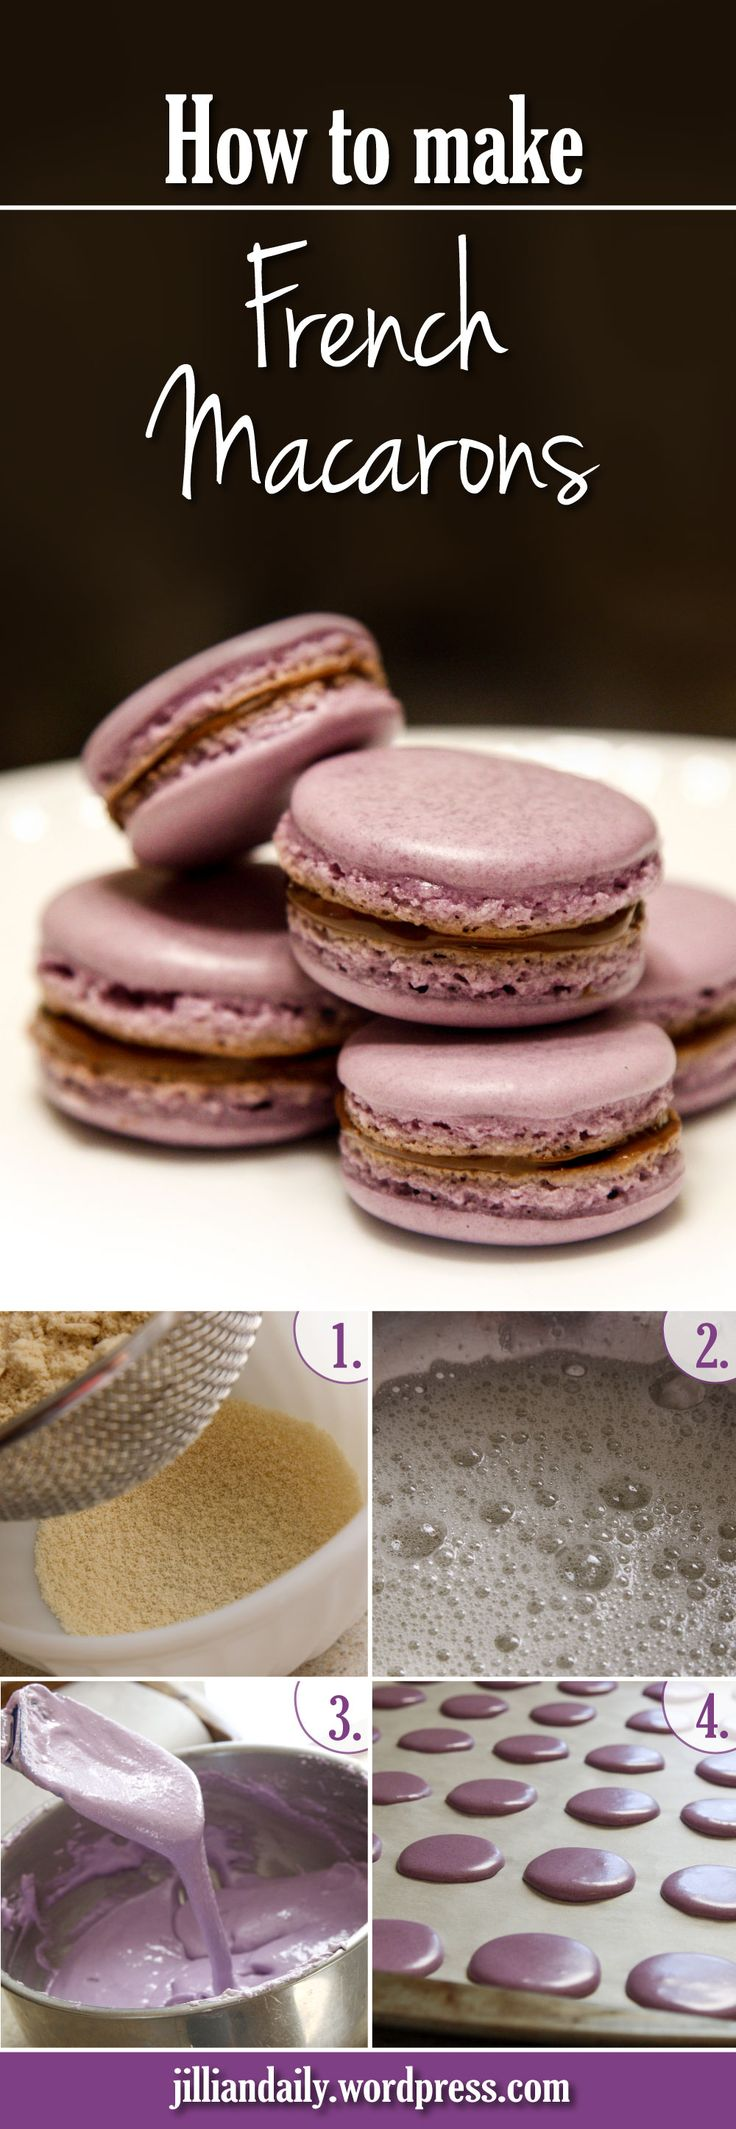 1000+ ideas about How To Make Macaroons on Pinterest | How ...